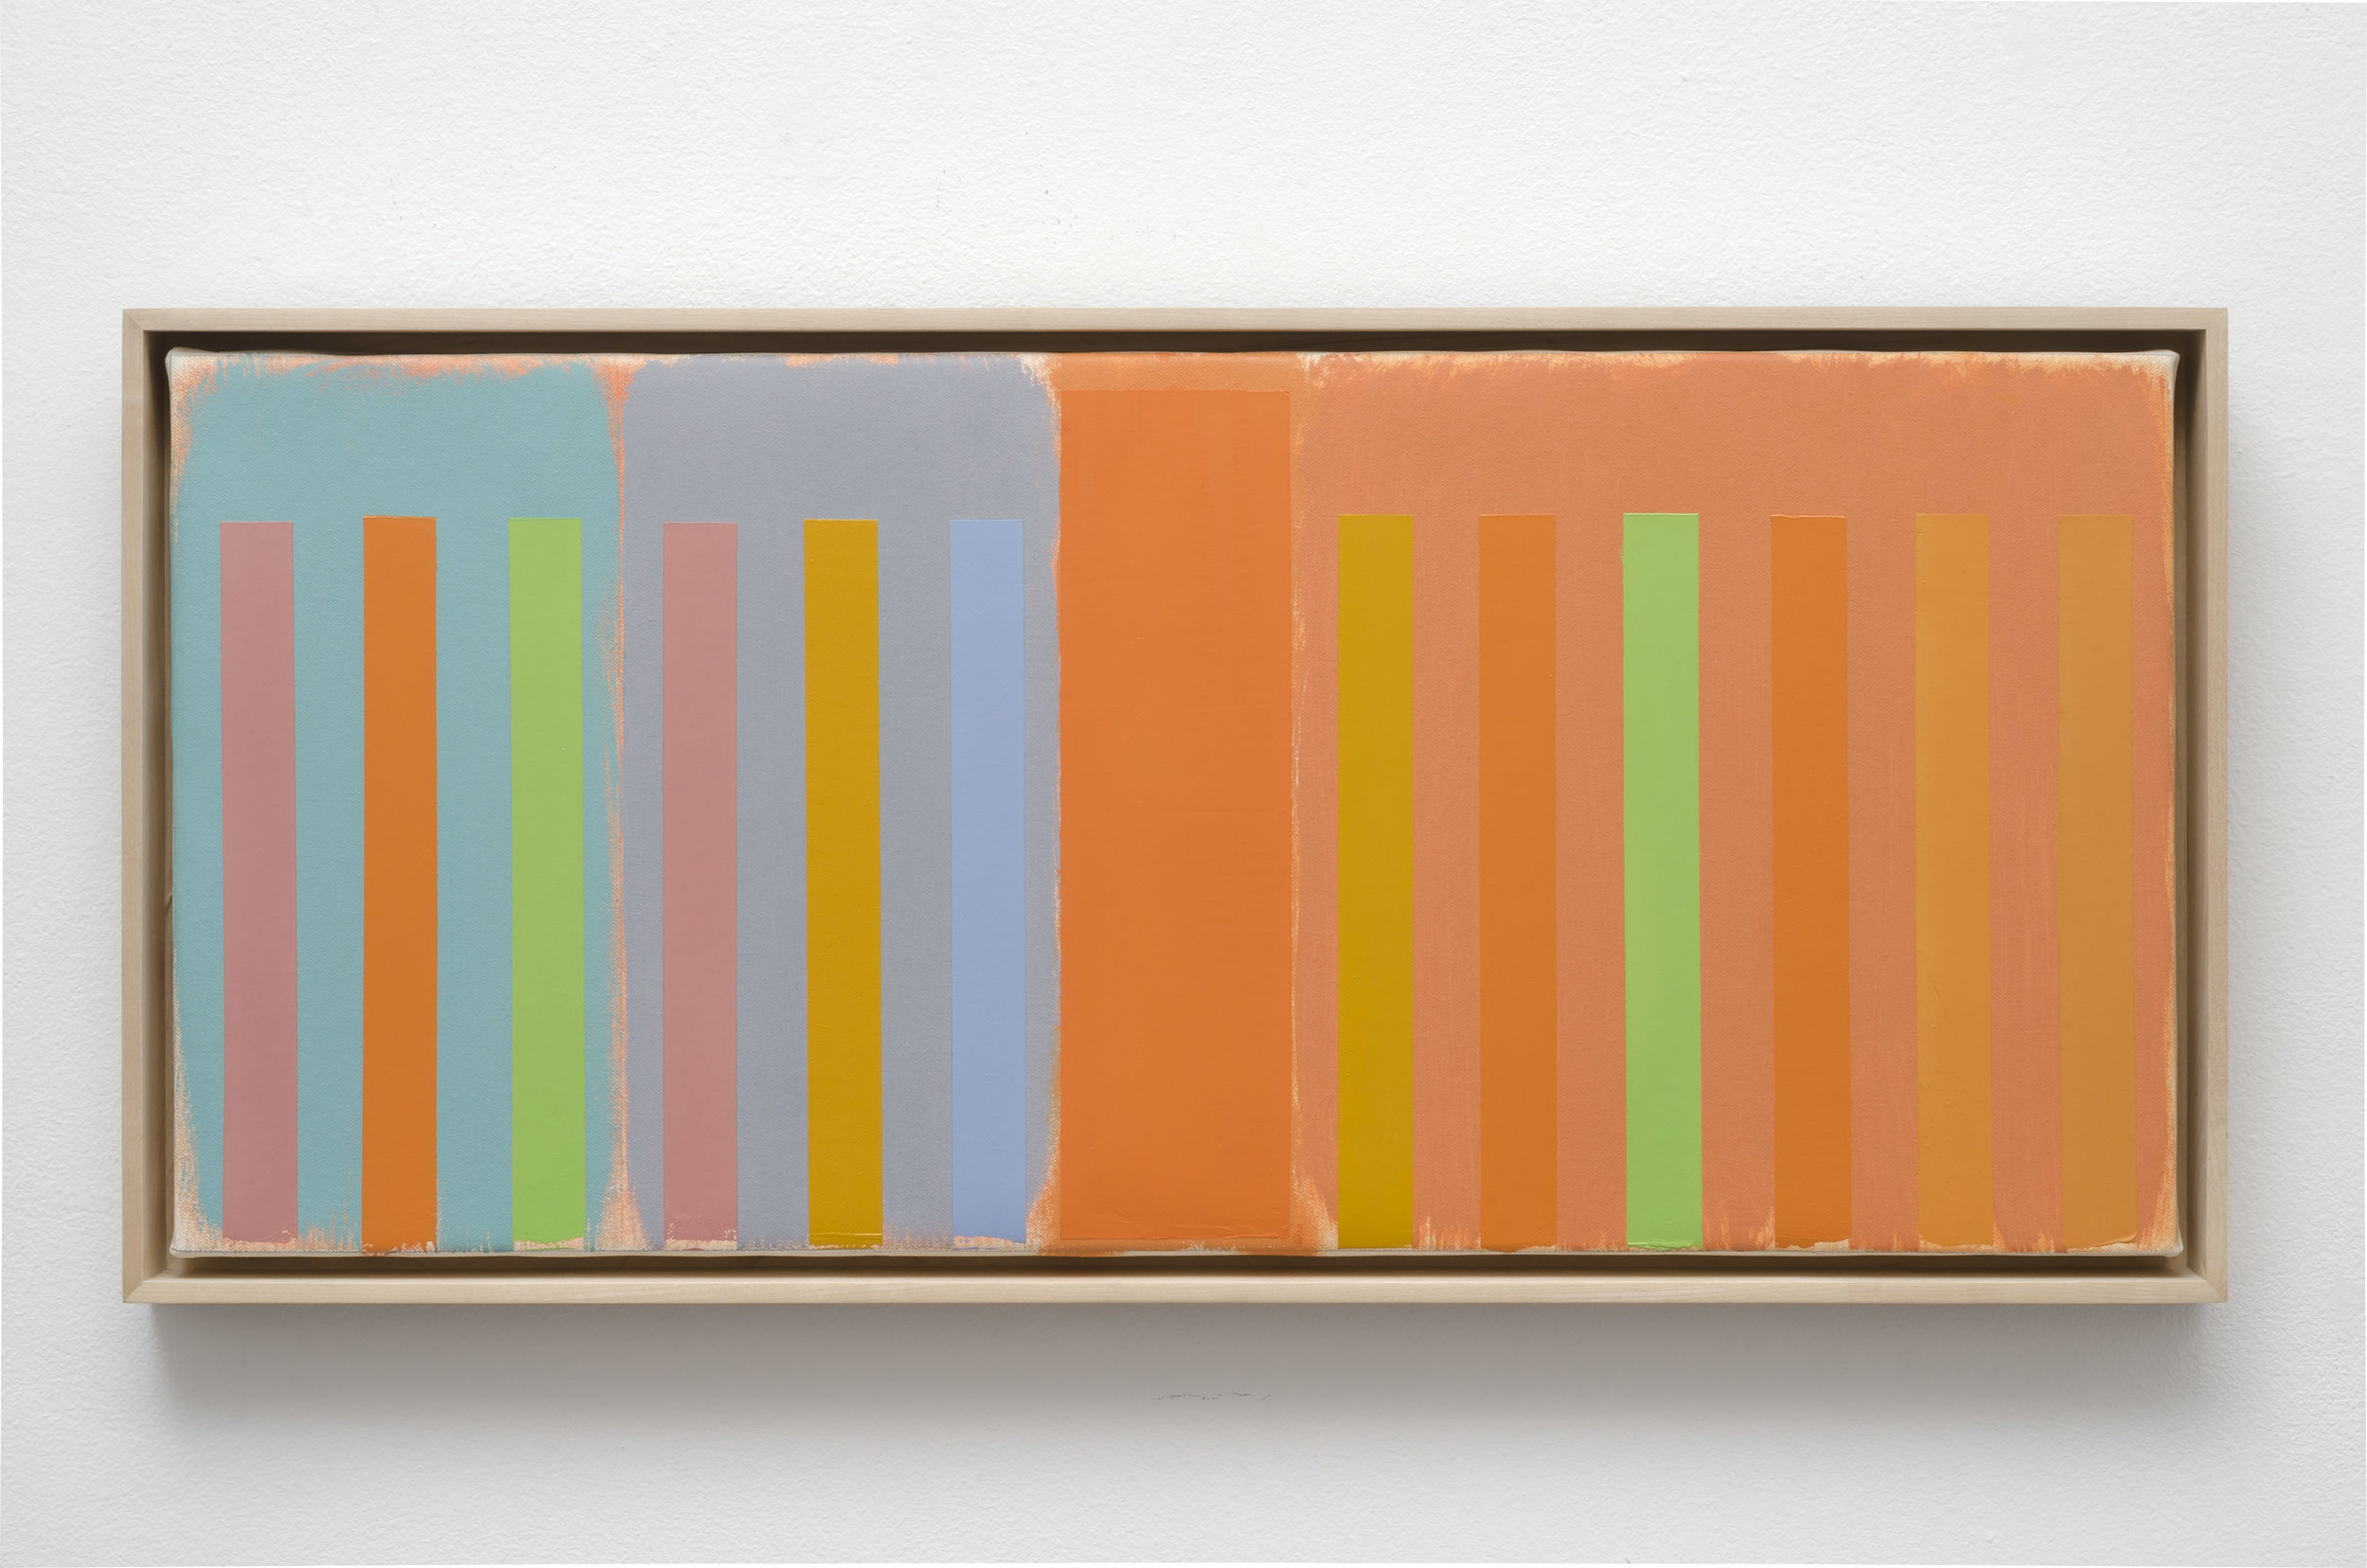 Untitled Abstract Composition (PC05-016), 2005  acrylic on canvas 12 1/2 x 28 1/4 inches; 31.8 x 71.8 centimeters